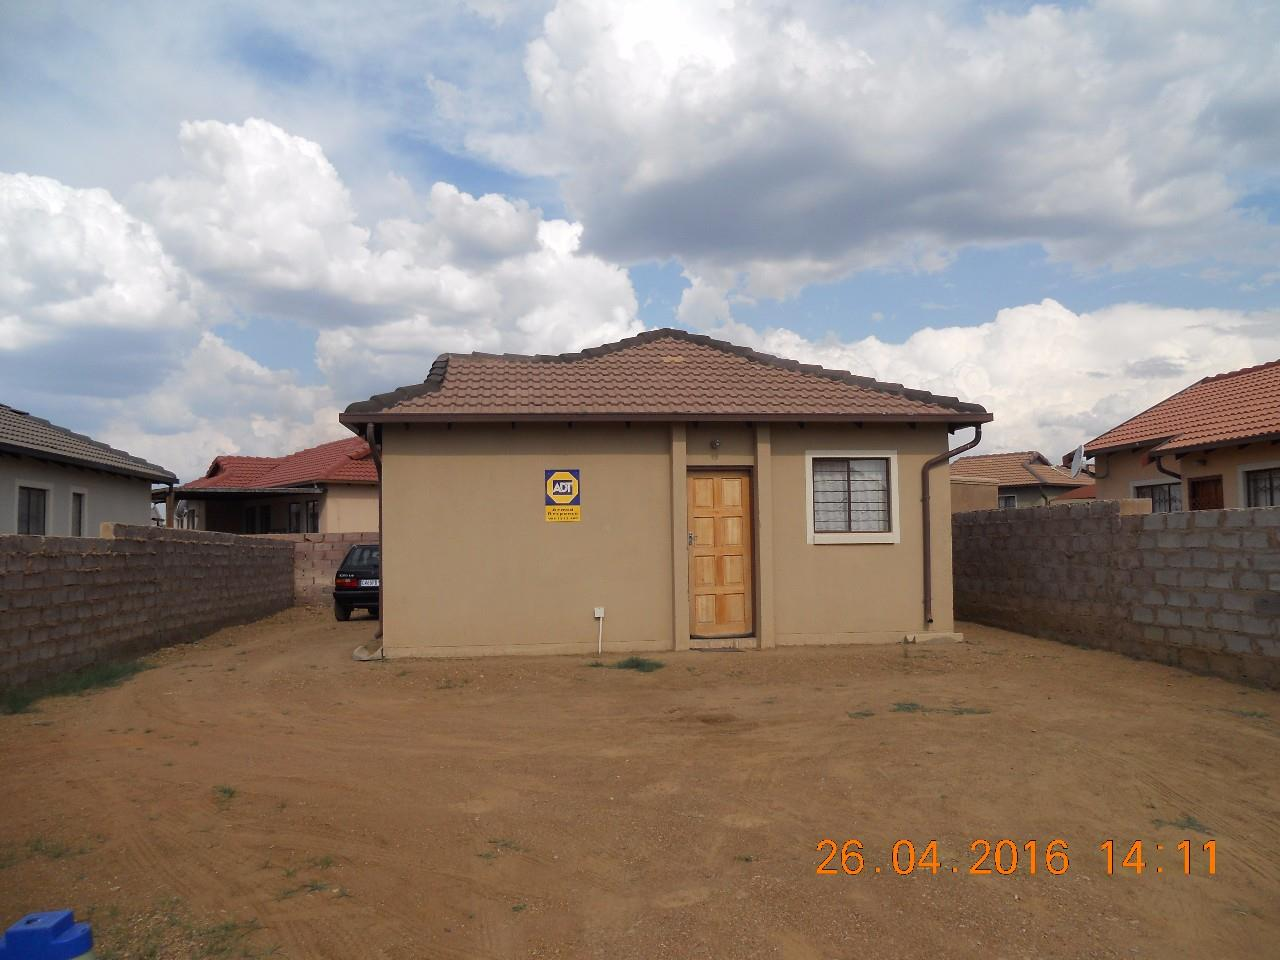 3 Bedroom House For Sale In Nellmapius Re Max Of Southern Africa